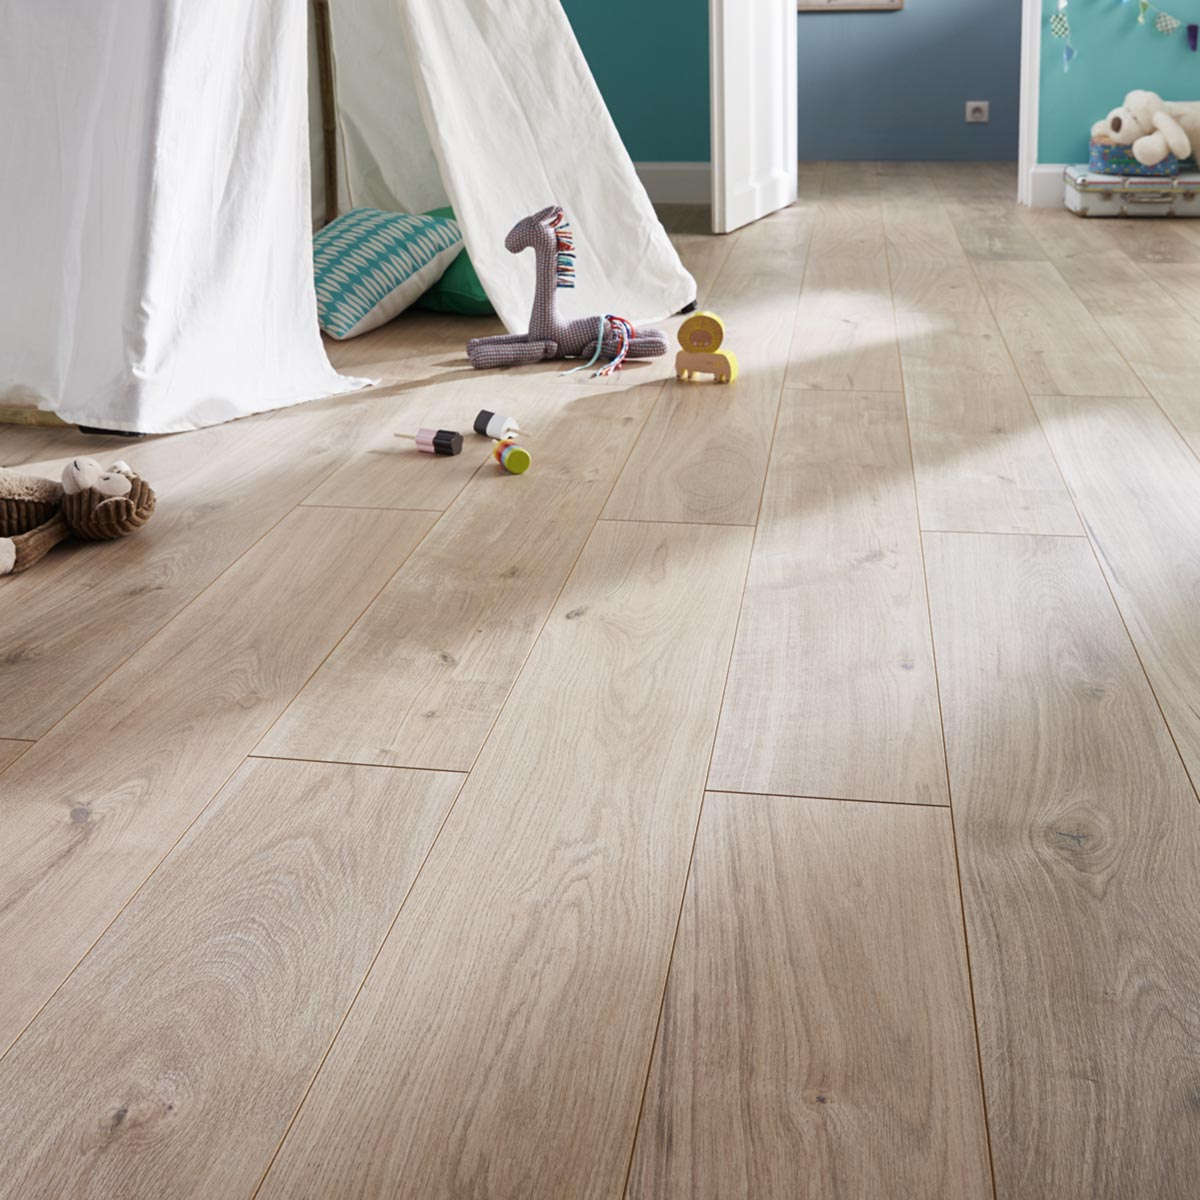 Sol Goodhome Pour Parquet Massif Brico Depot Idees Conception Jardin Idees Conception Jardin